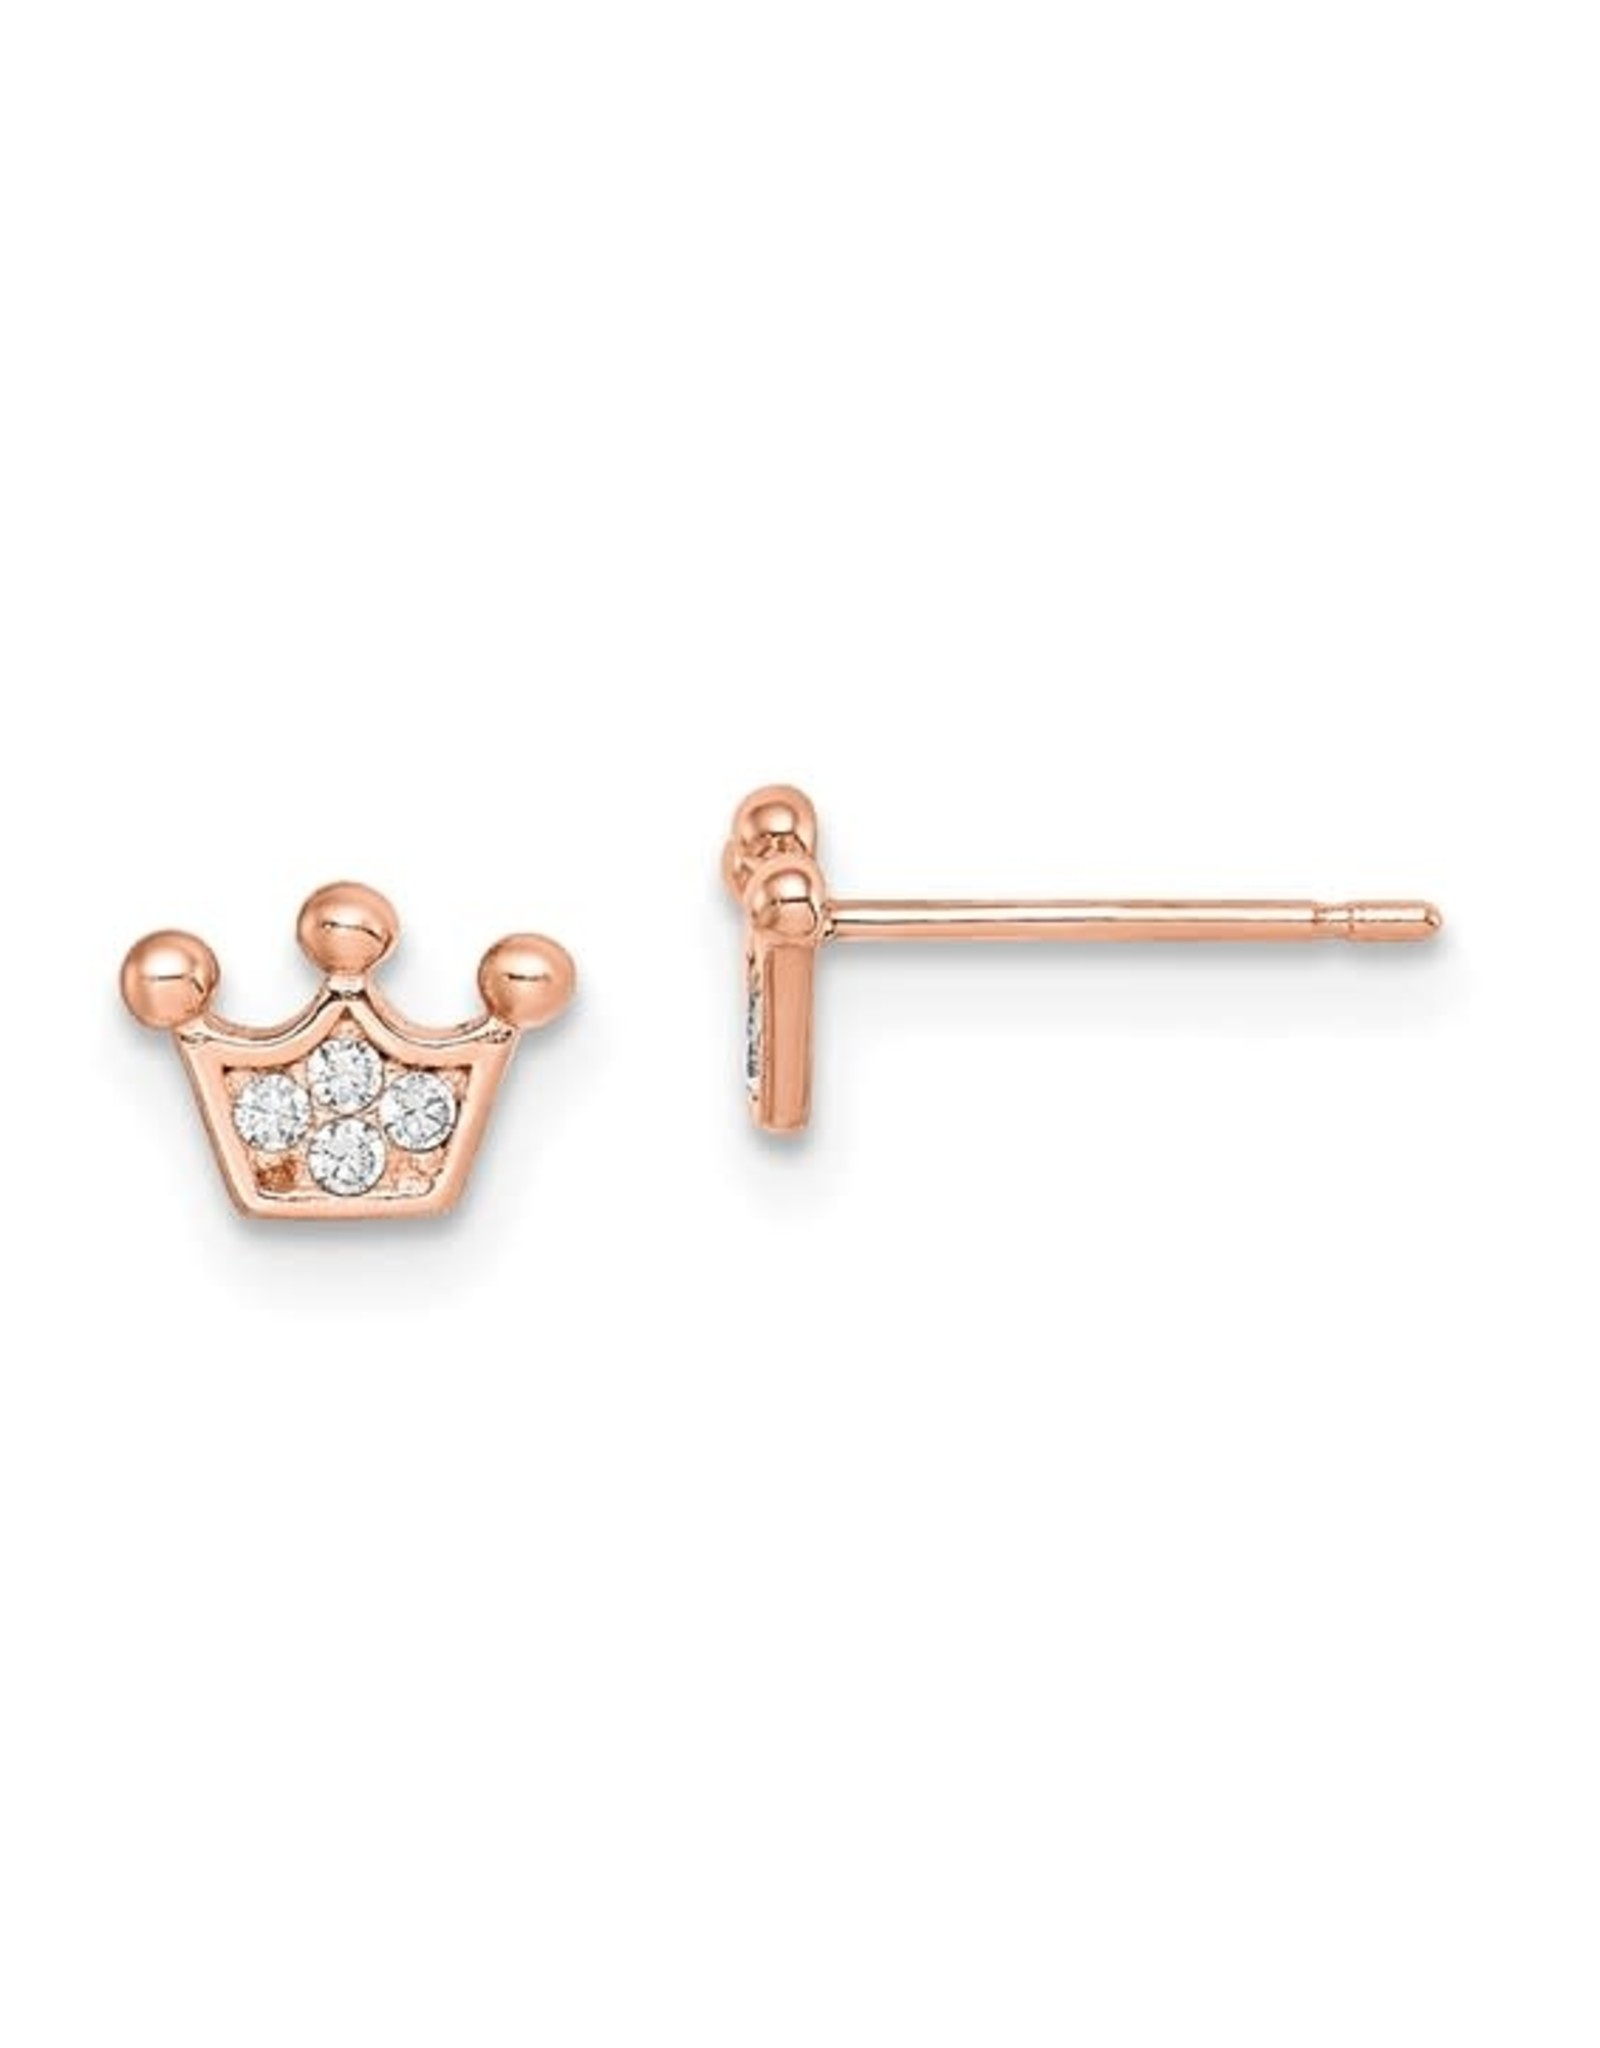 14K Rose Gold Crown Stud Earrings with White Zirconias